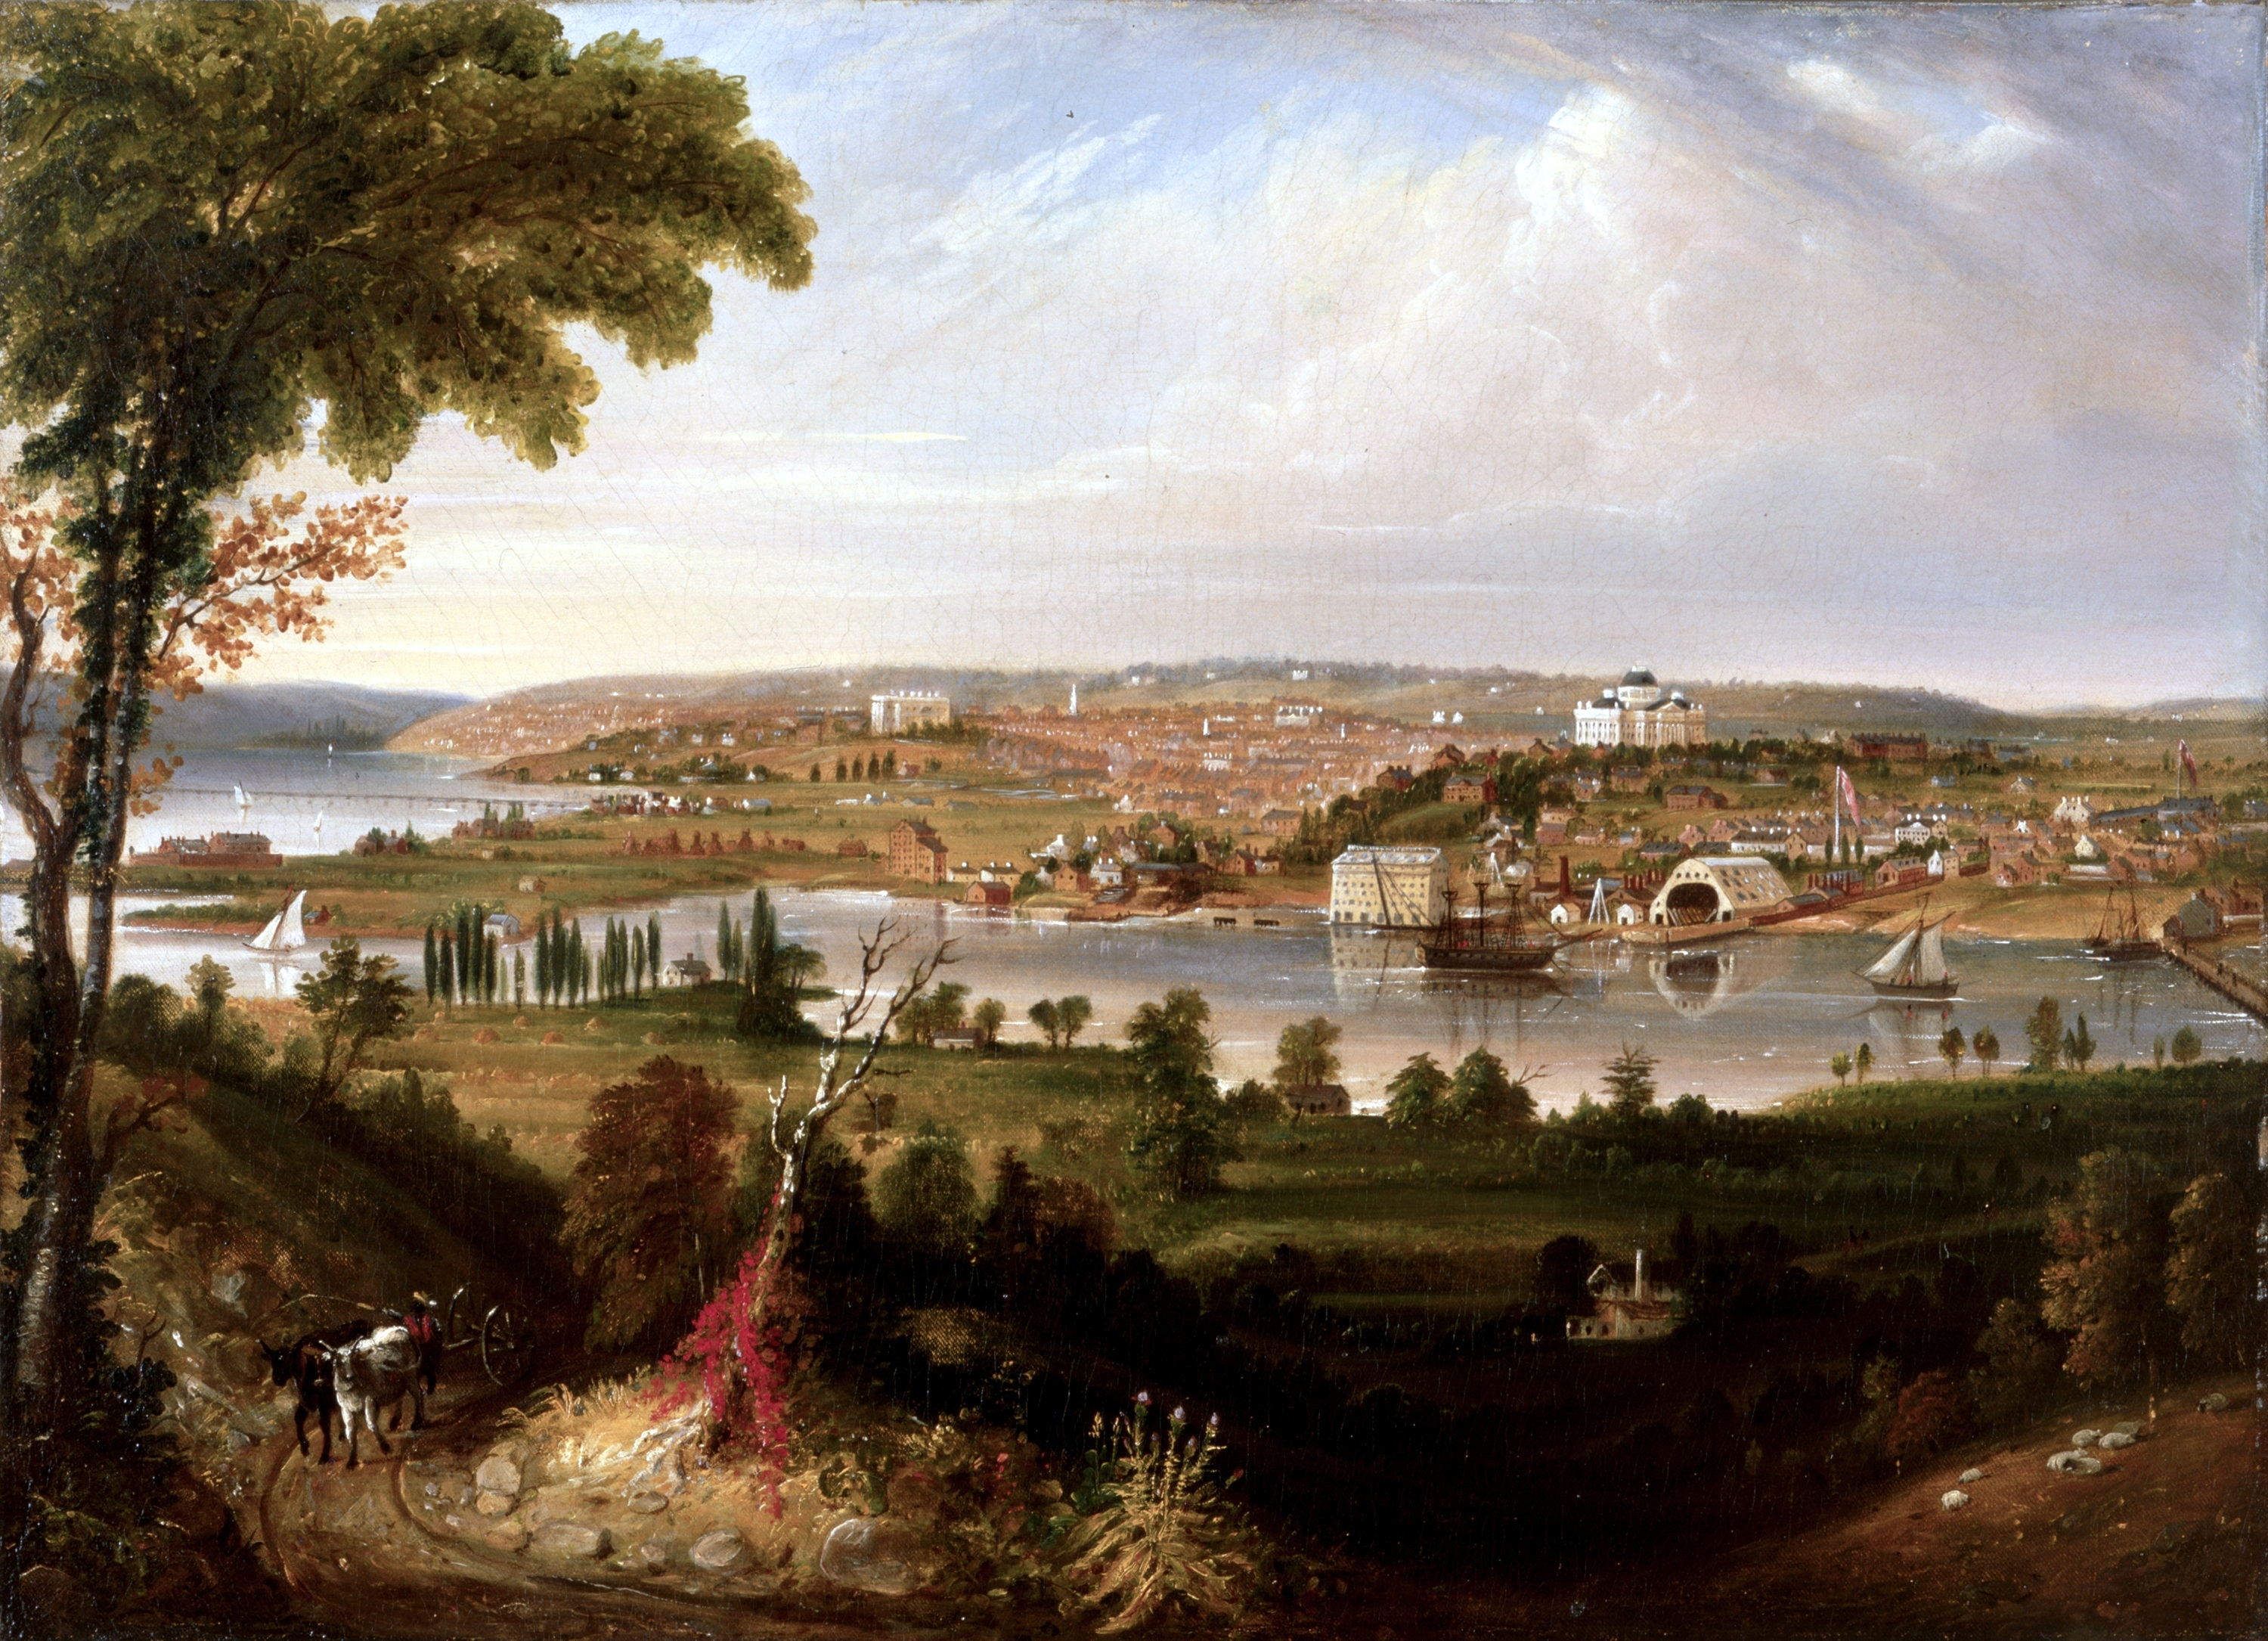 City of Washington from Beyond the Navy Yard by George Cooke, 1833, on display in the White House Oval Office. The White House Historical Association, 2008: